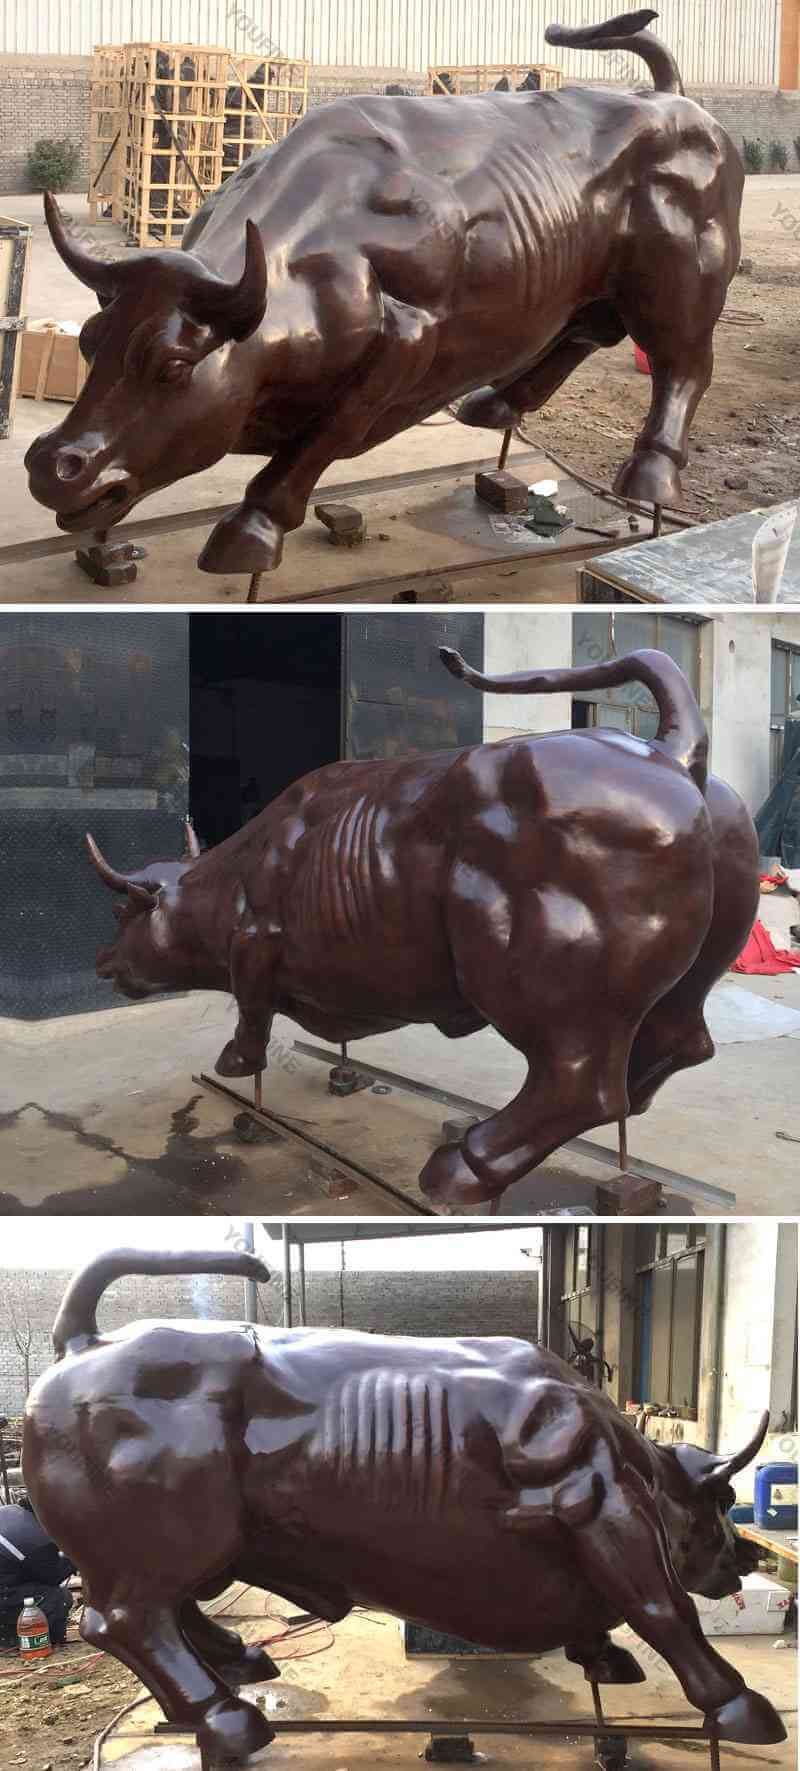 Outdoor famous wall street bull statue bronze animal sculptures for sale